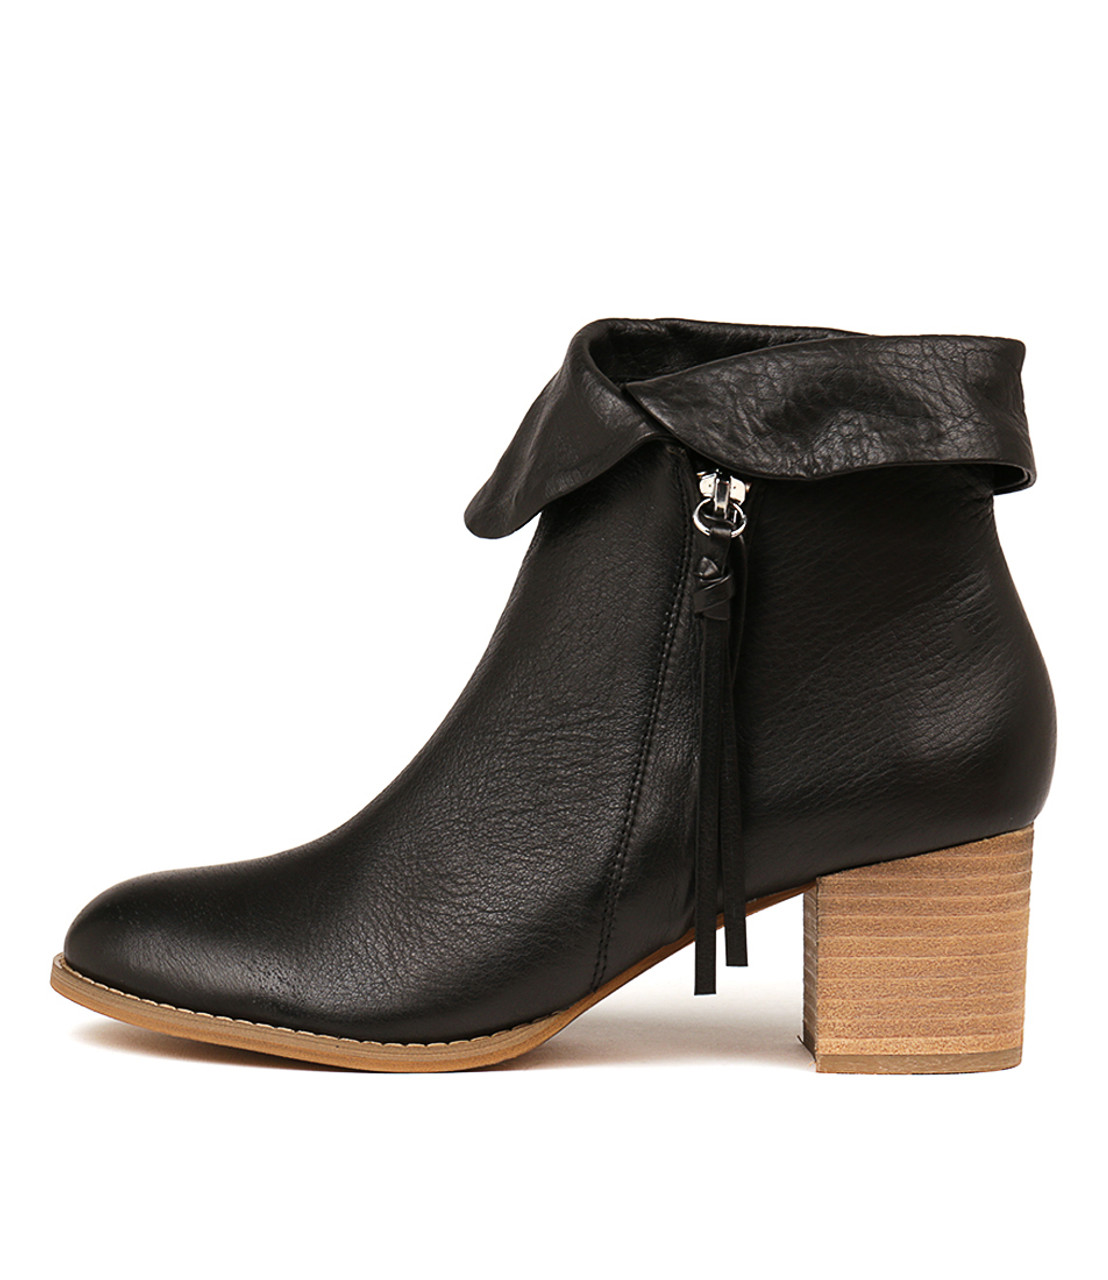 60218a8ae99 SHAREEDS Ankle Boots in Black Leather/ Natural Heel - Django and ...